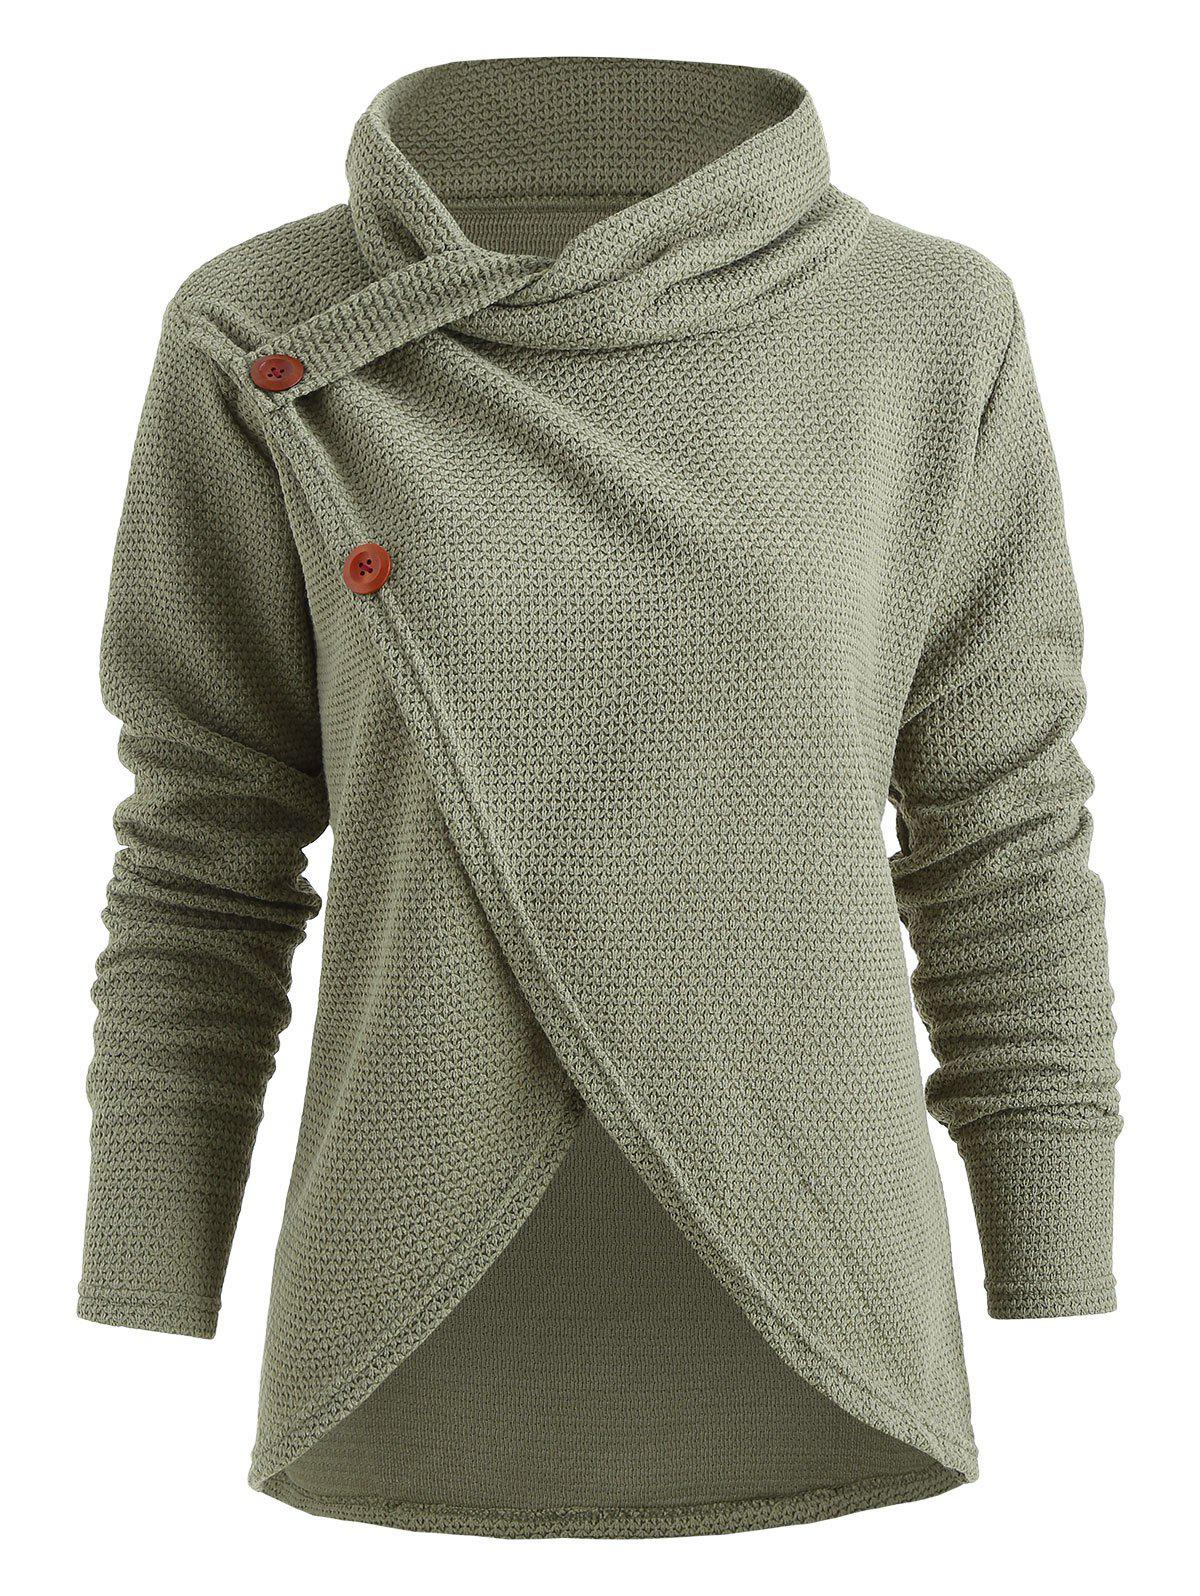 Shops Turtle Neck Button Pullover Sweater